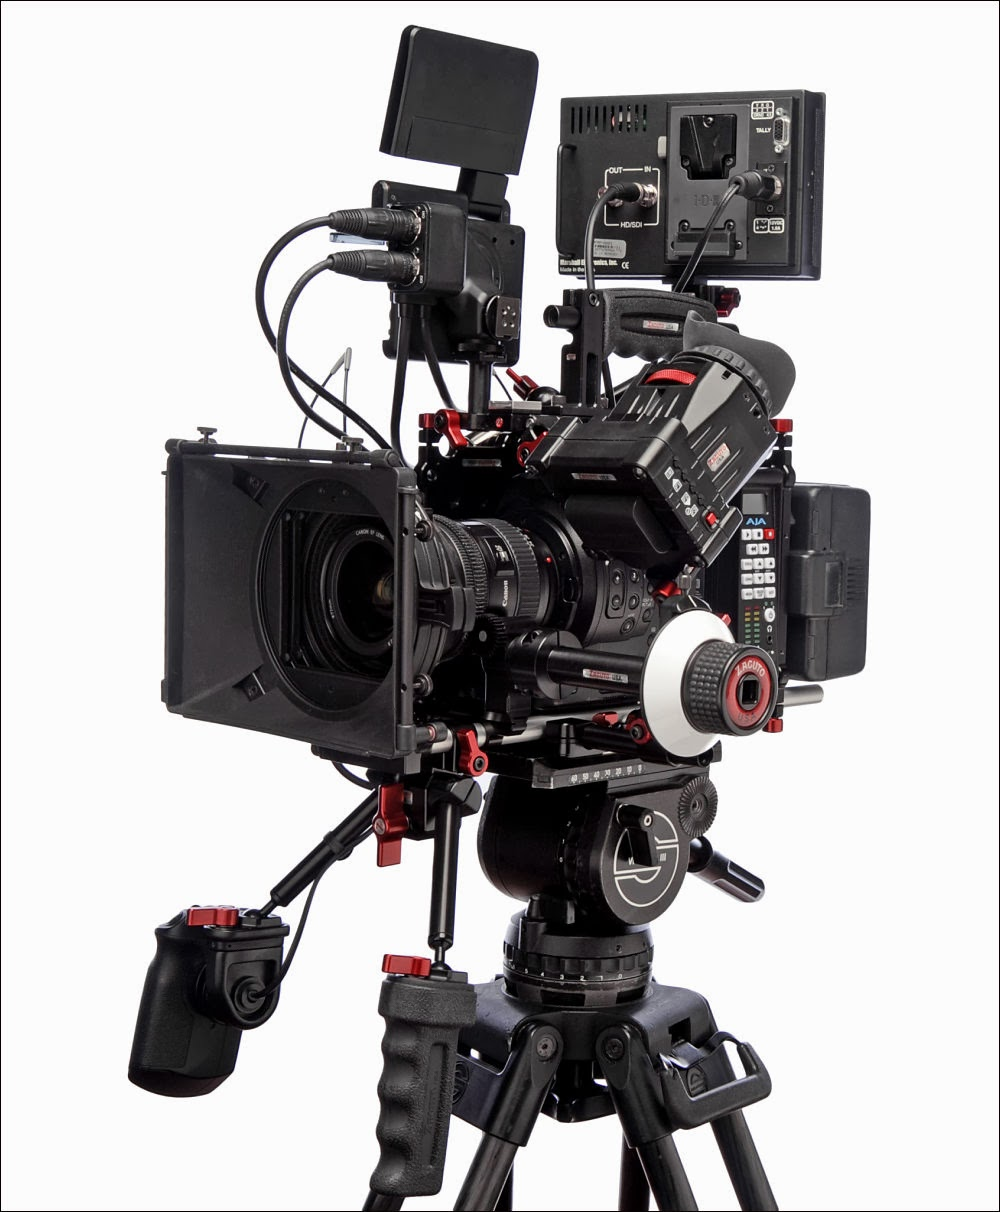 jib on hire lighting equipment on rental shooting equipment on rental video cameras on hire digital video cameras for rent marriage photography ... & Cameras and lenses on rental in hyderabad | FILM u0026 VIDEO EQUIPMENT ...